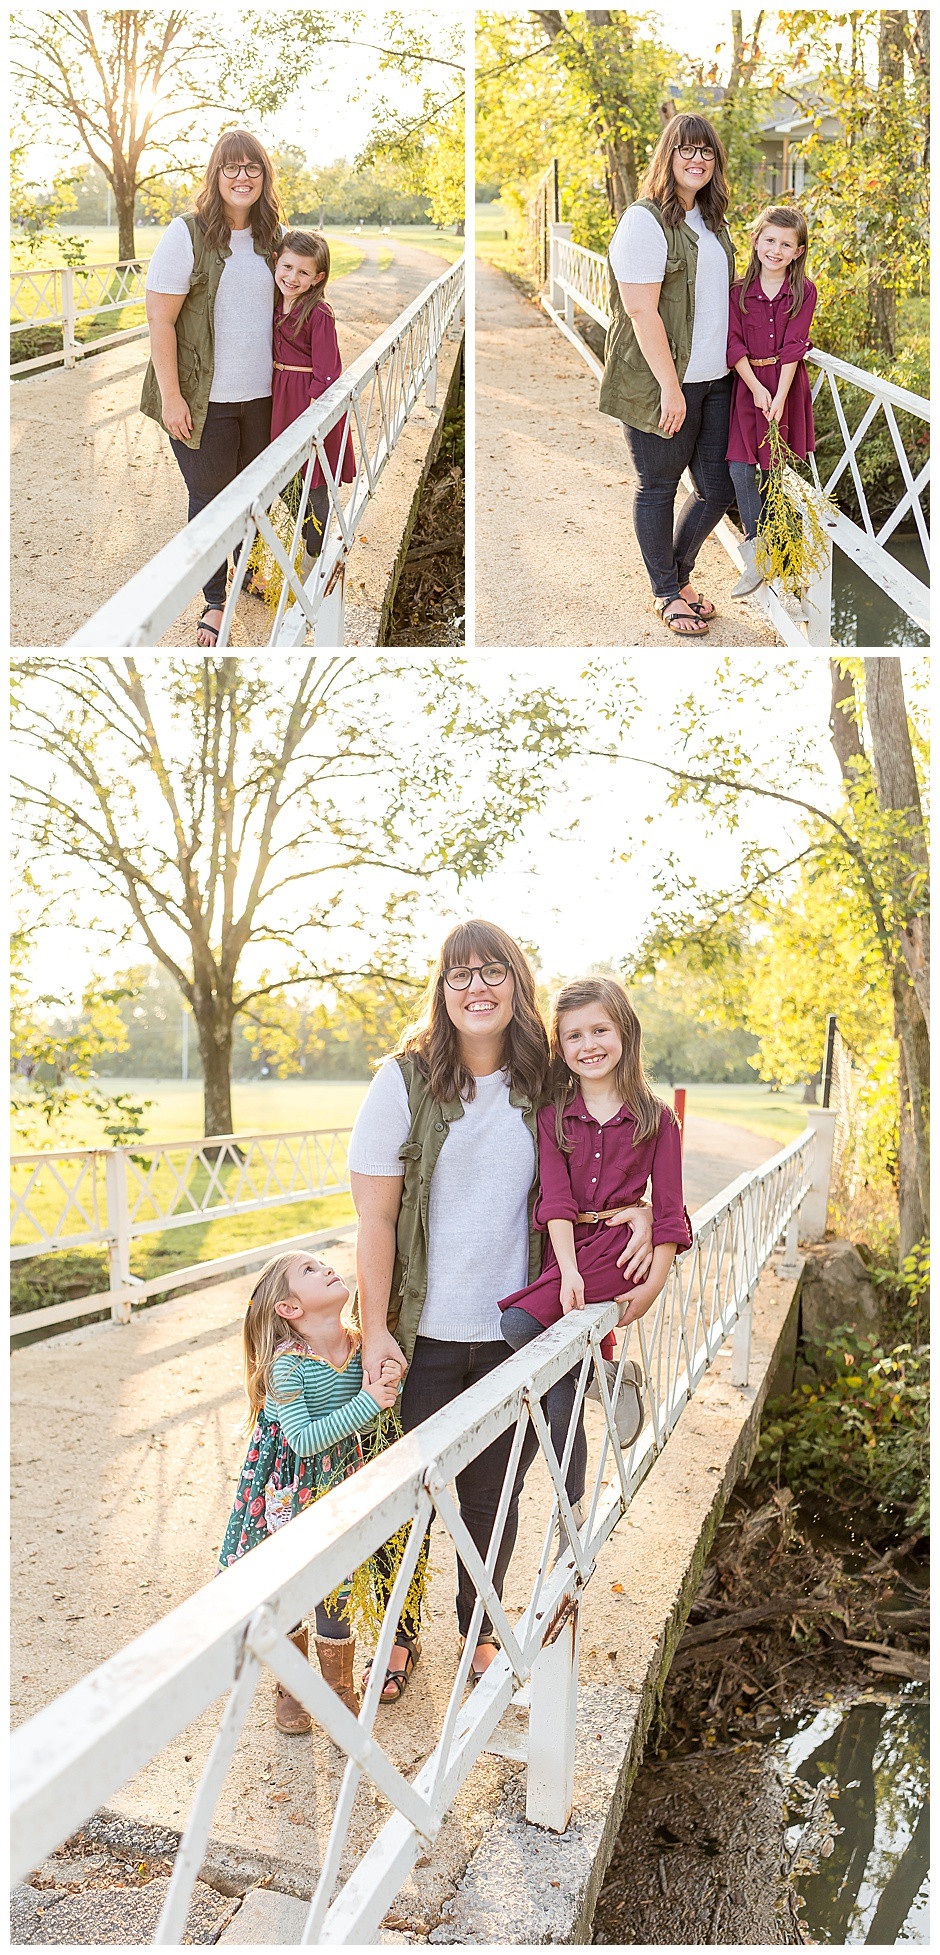 photographer Chattanooga TN, family photos in Chattanooga, woman with two girls